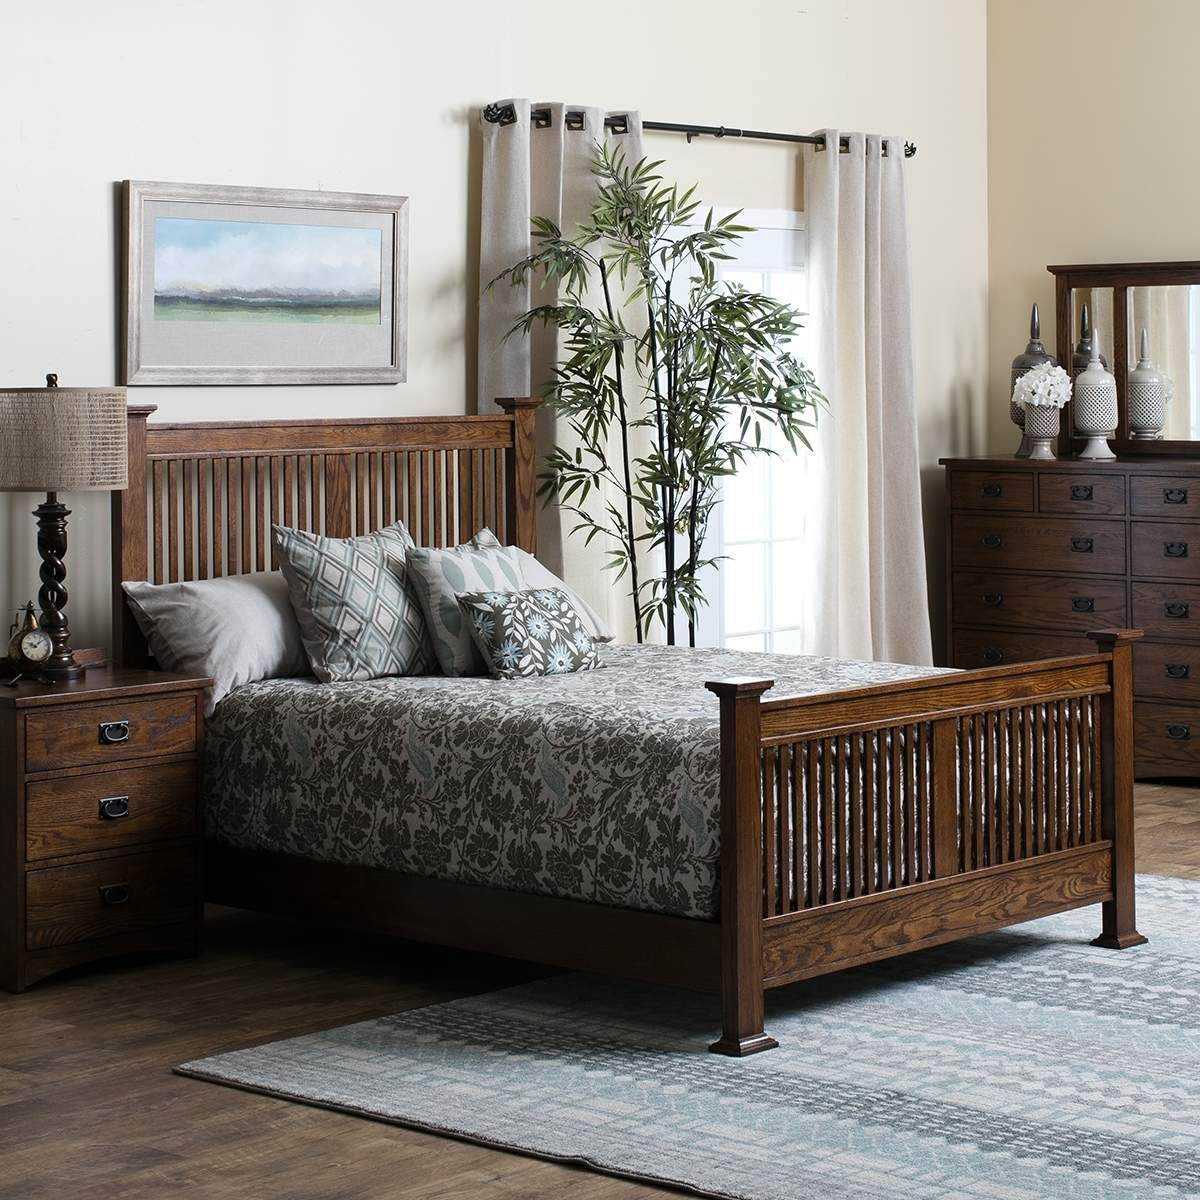 The Oak Park bedroom furniture group is a casual styled